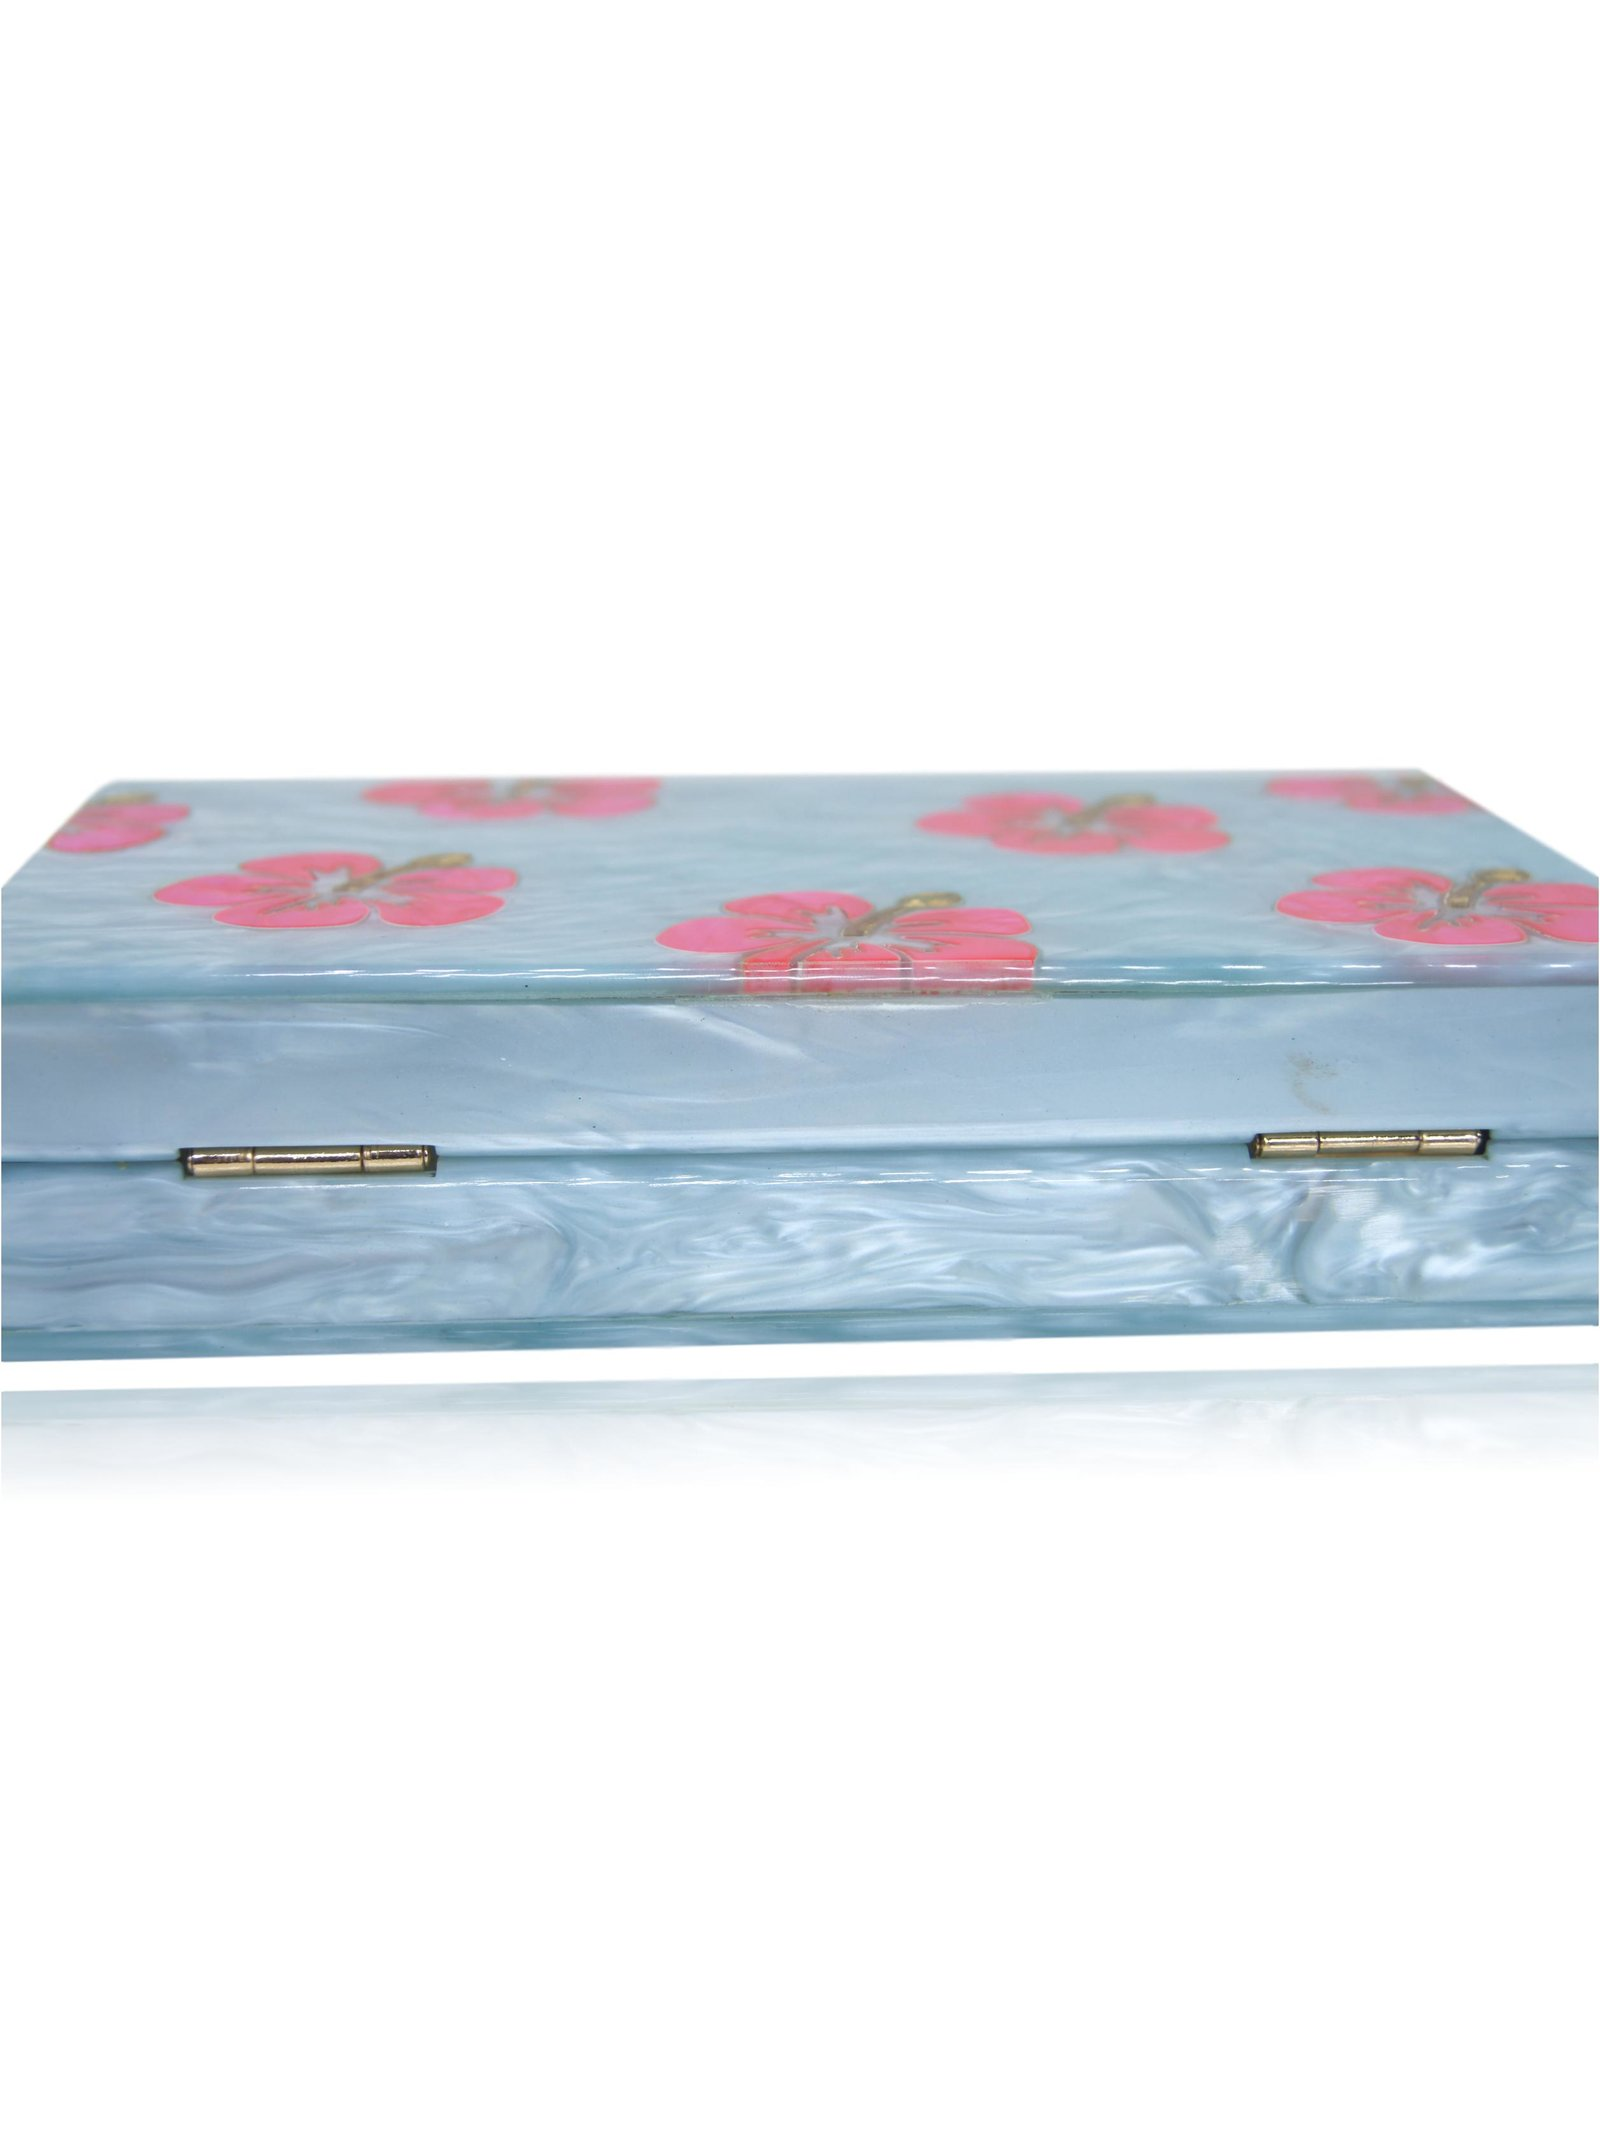 Milanblocks Milanblocks Hawaii Hibiscus Flowers Box Clutch